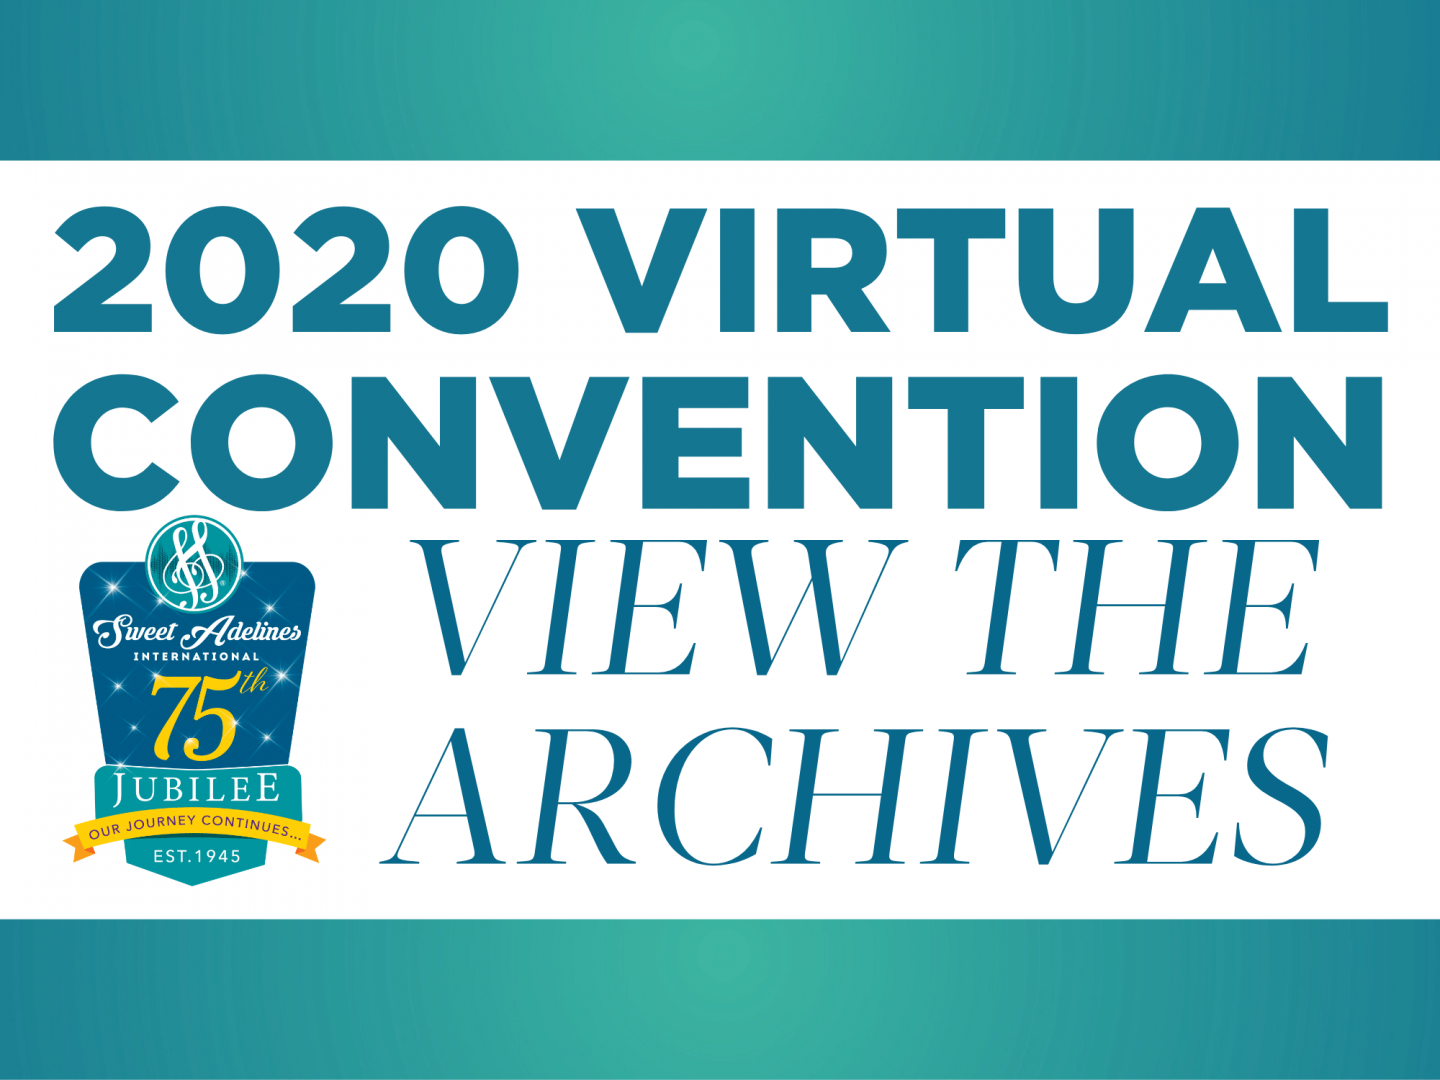 2020 Virtual Convention - Archives